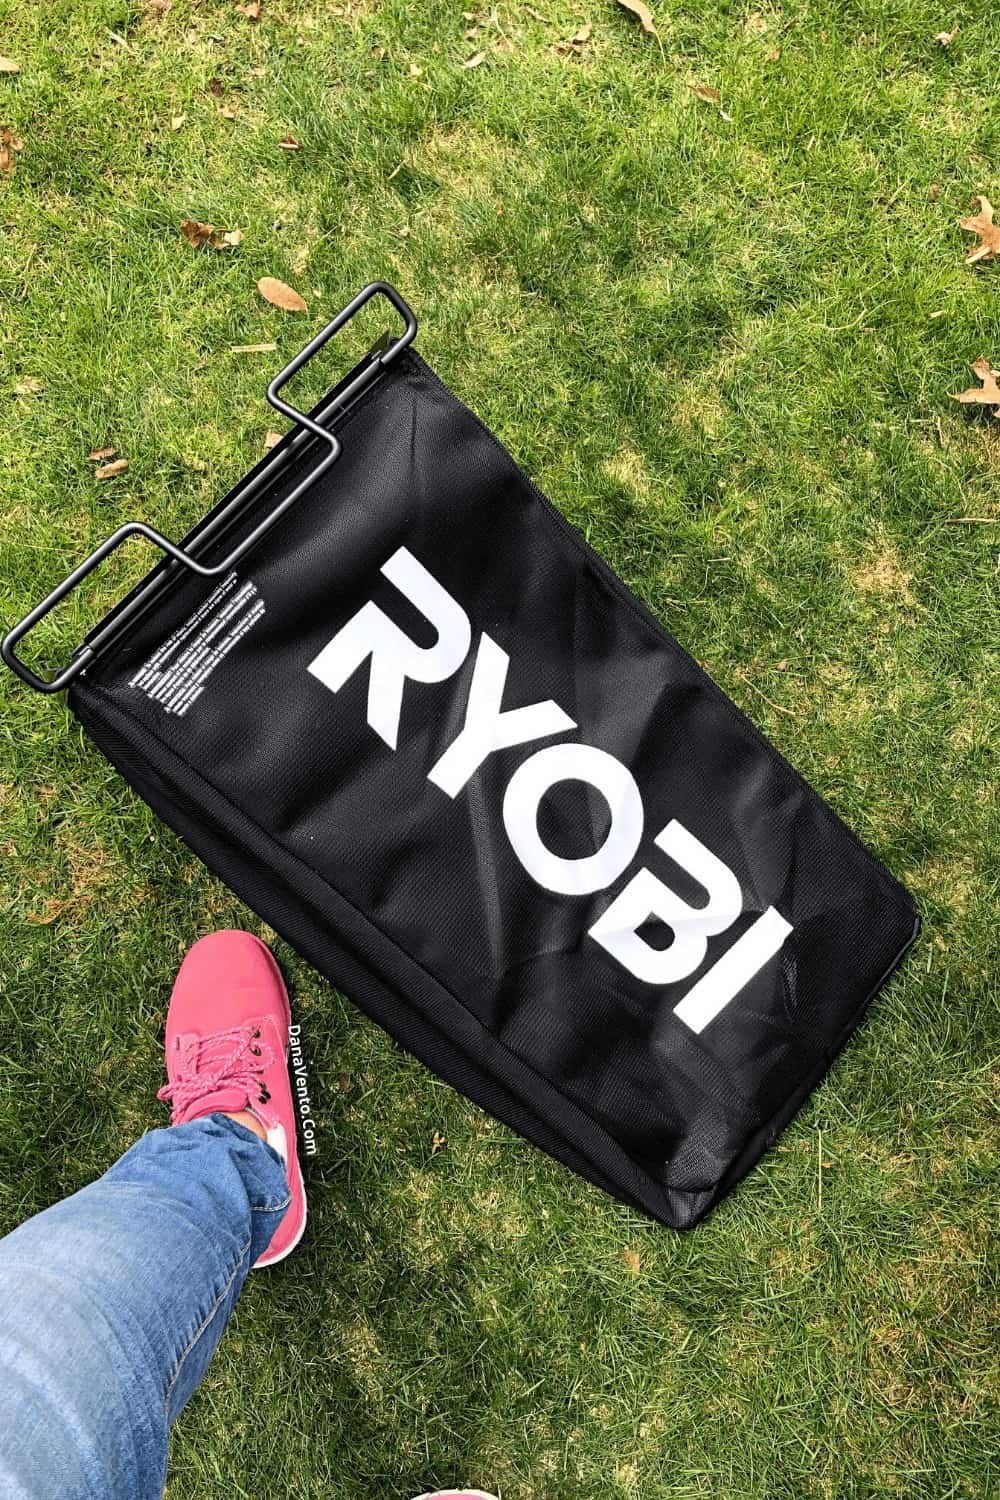 RYOBI lawn catching bag for mulching or not